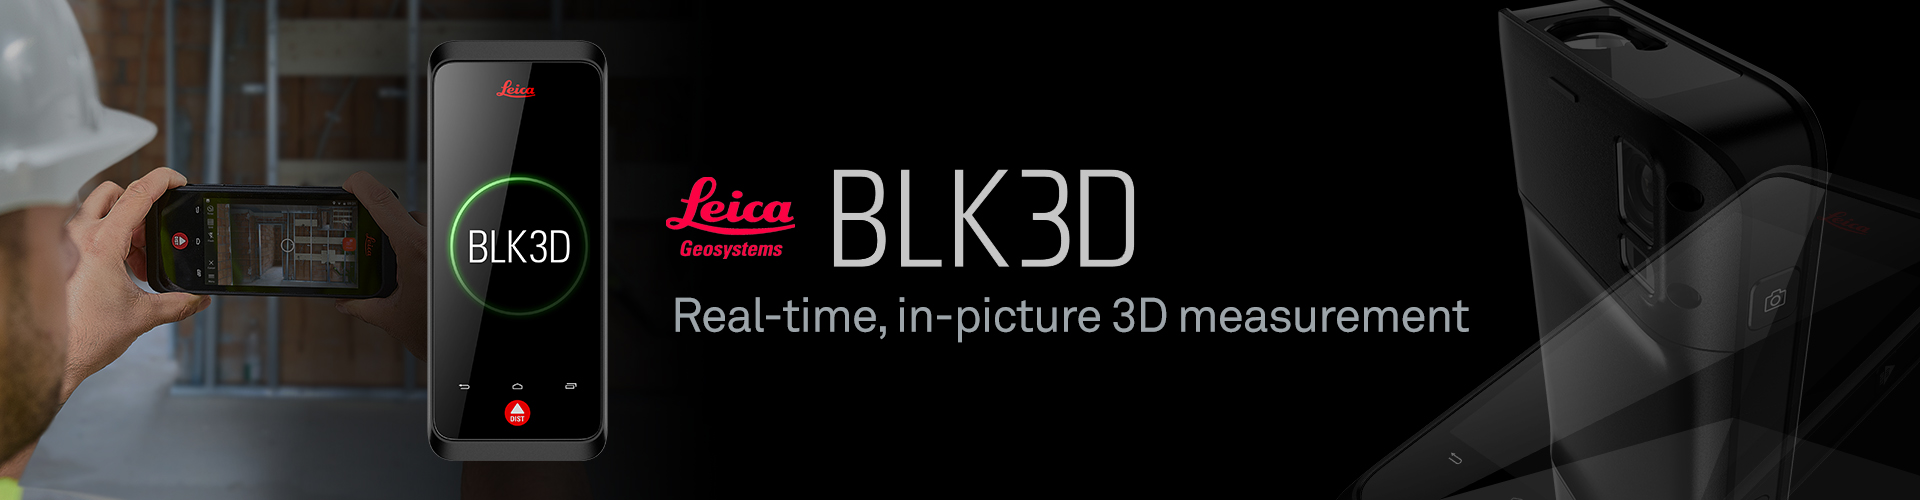 Leica BLK3D Real-time, professional grade, in-picture 3D measurement